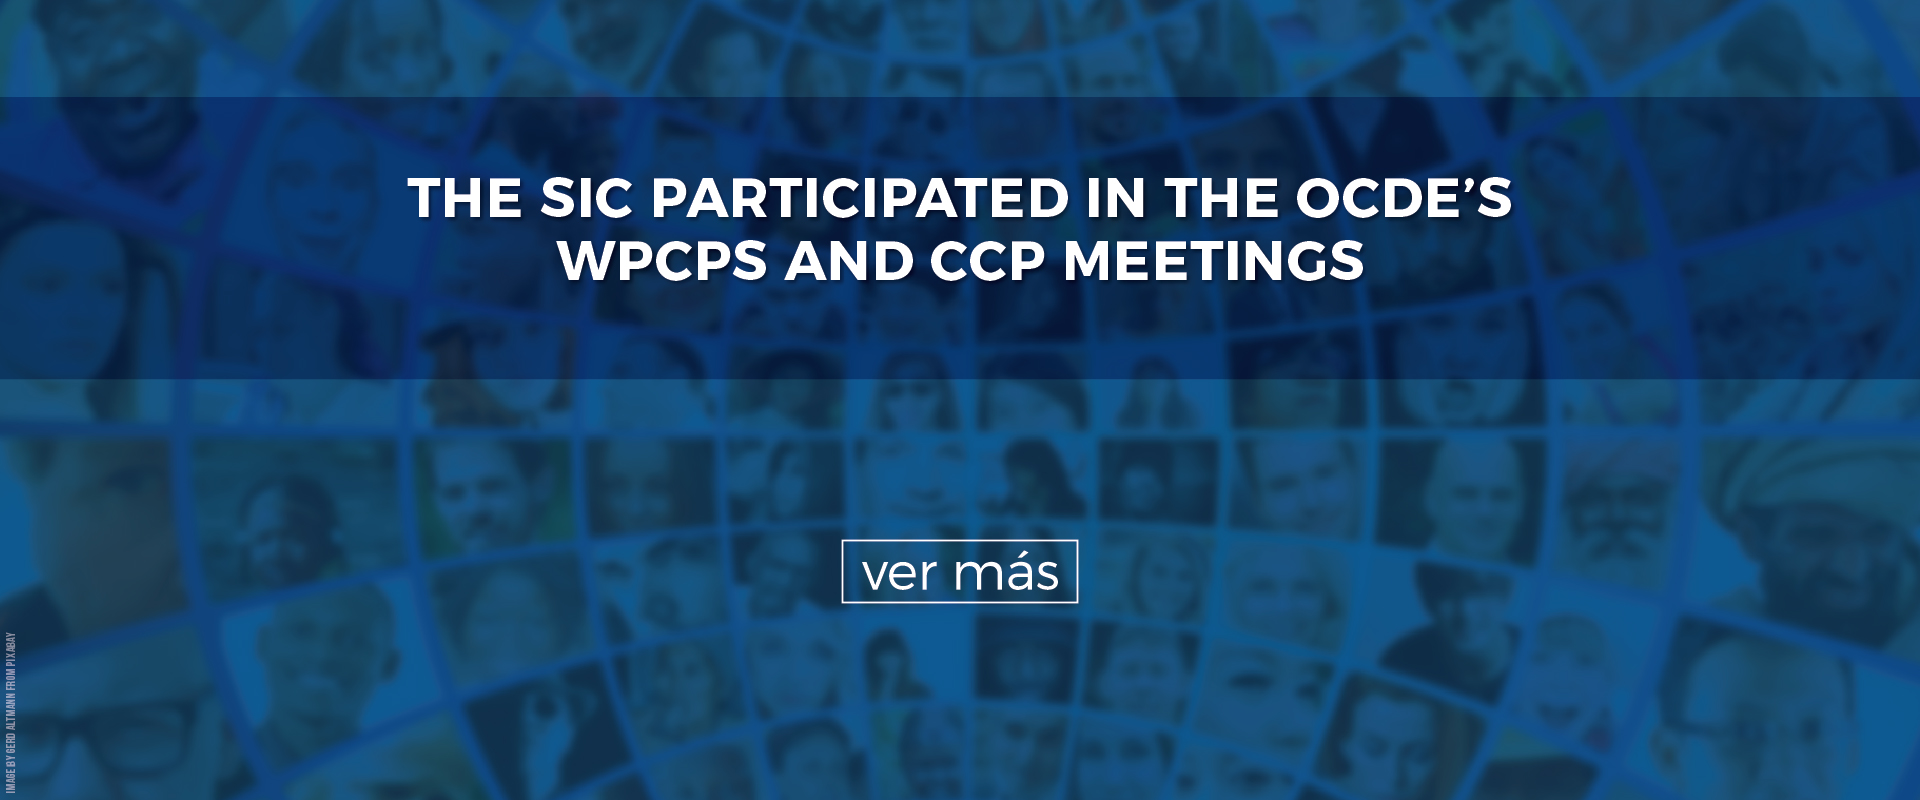 The SIC participated in the OCDE'S WPCPS and CCP meetings